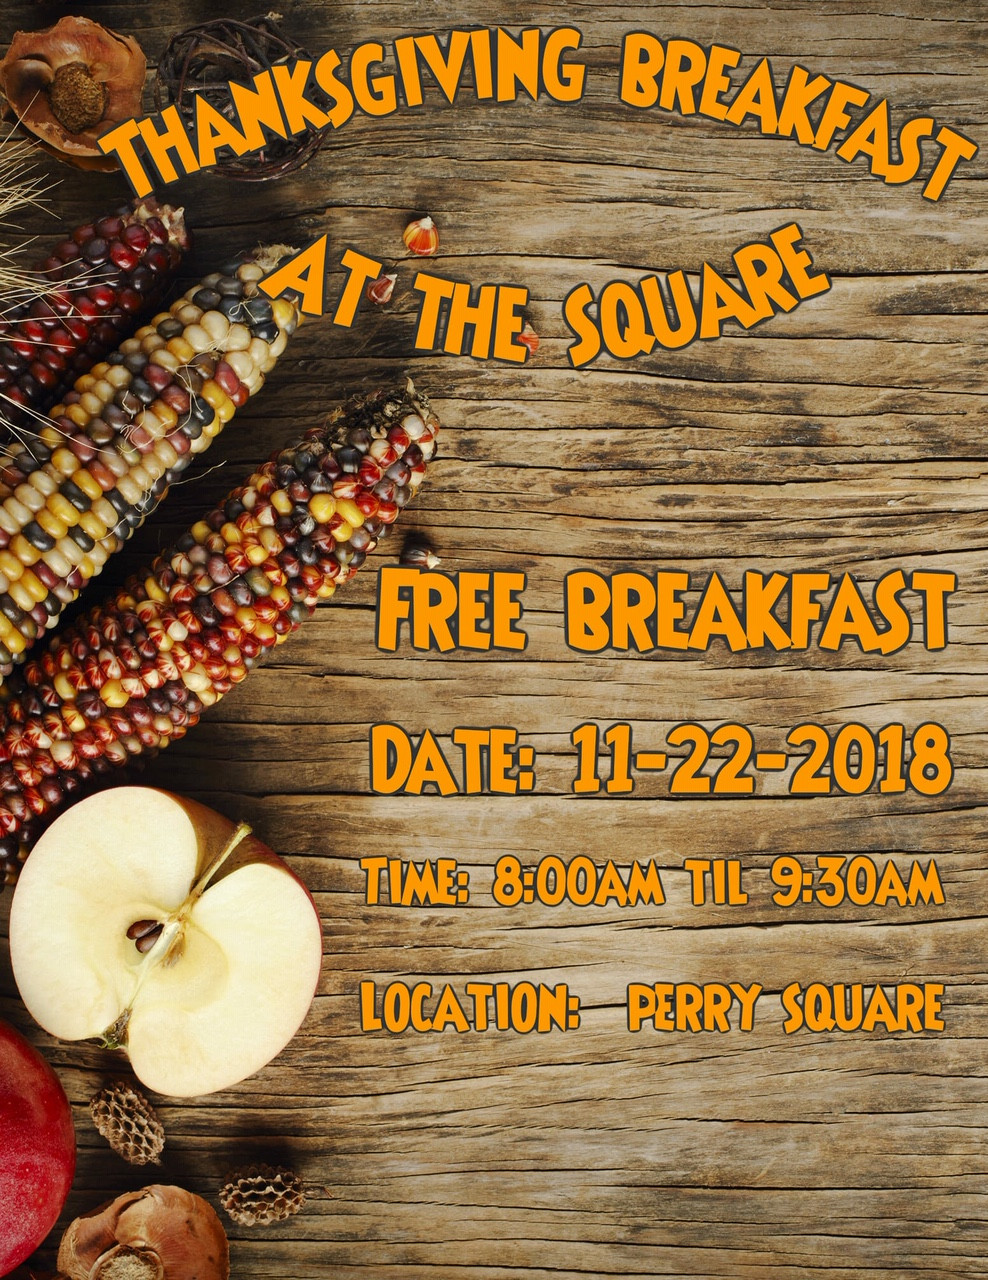 Free breakfast on Thanksgiving in Perry Square, Erie, PA